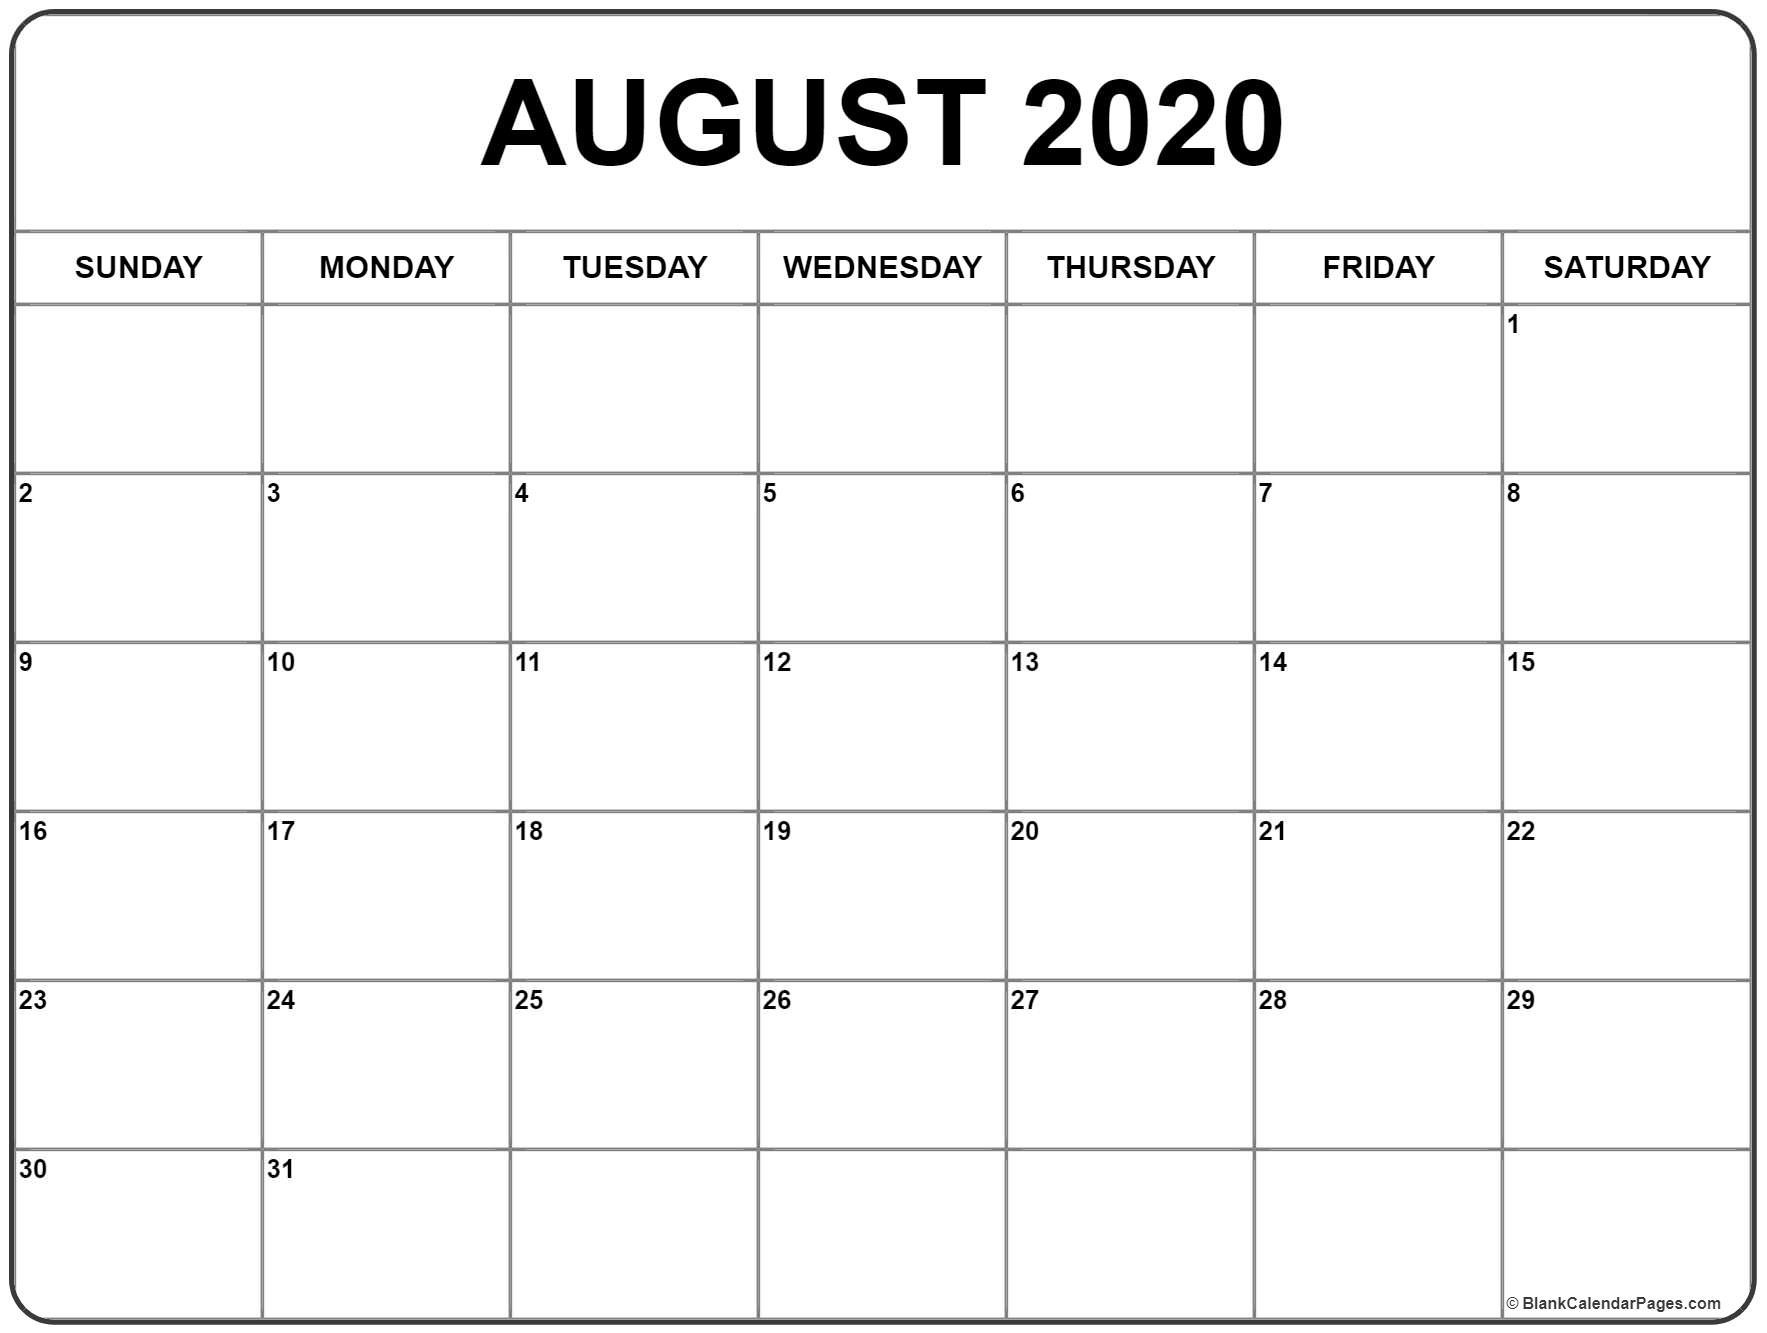 Planner August 2020 To December 2020 | Gallery Of Calendar  Calandar For August To December 2020